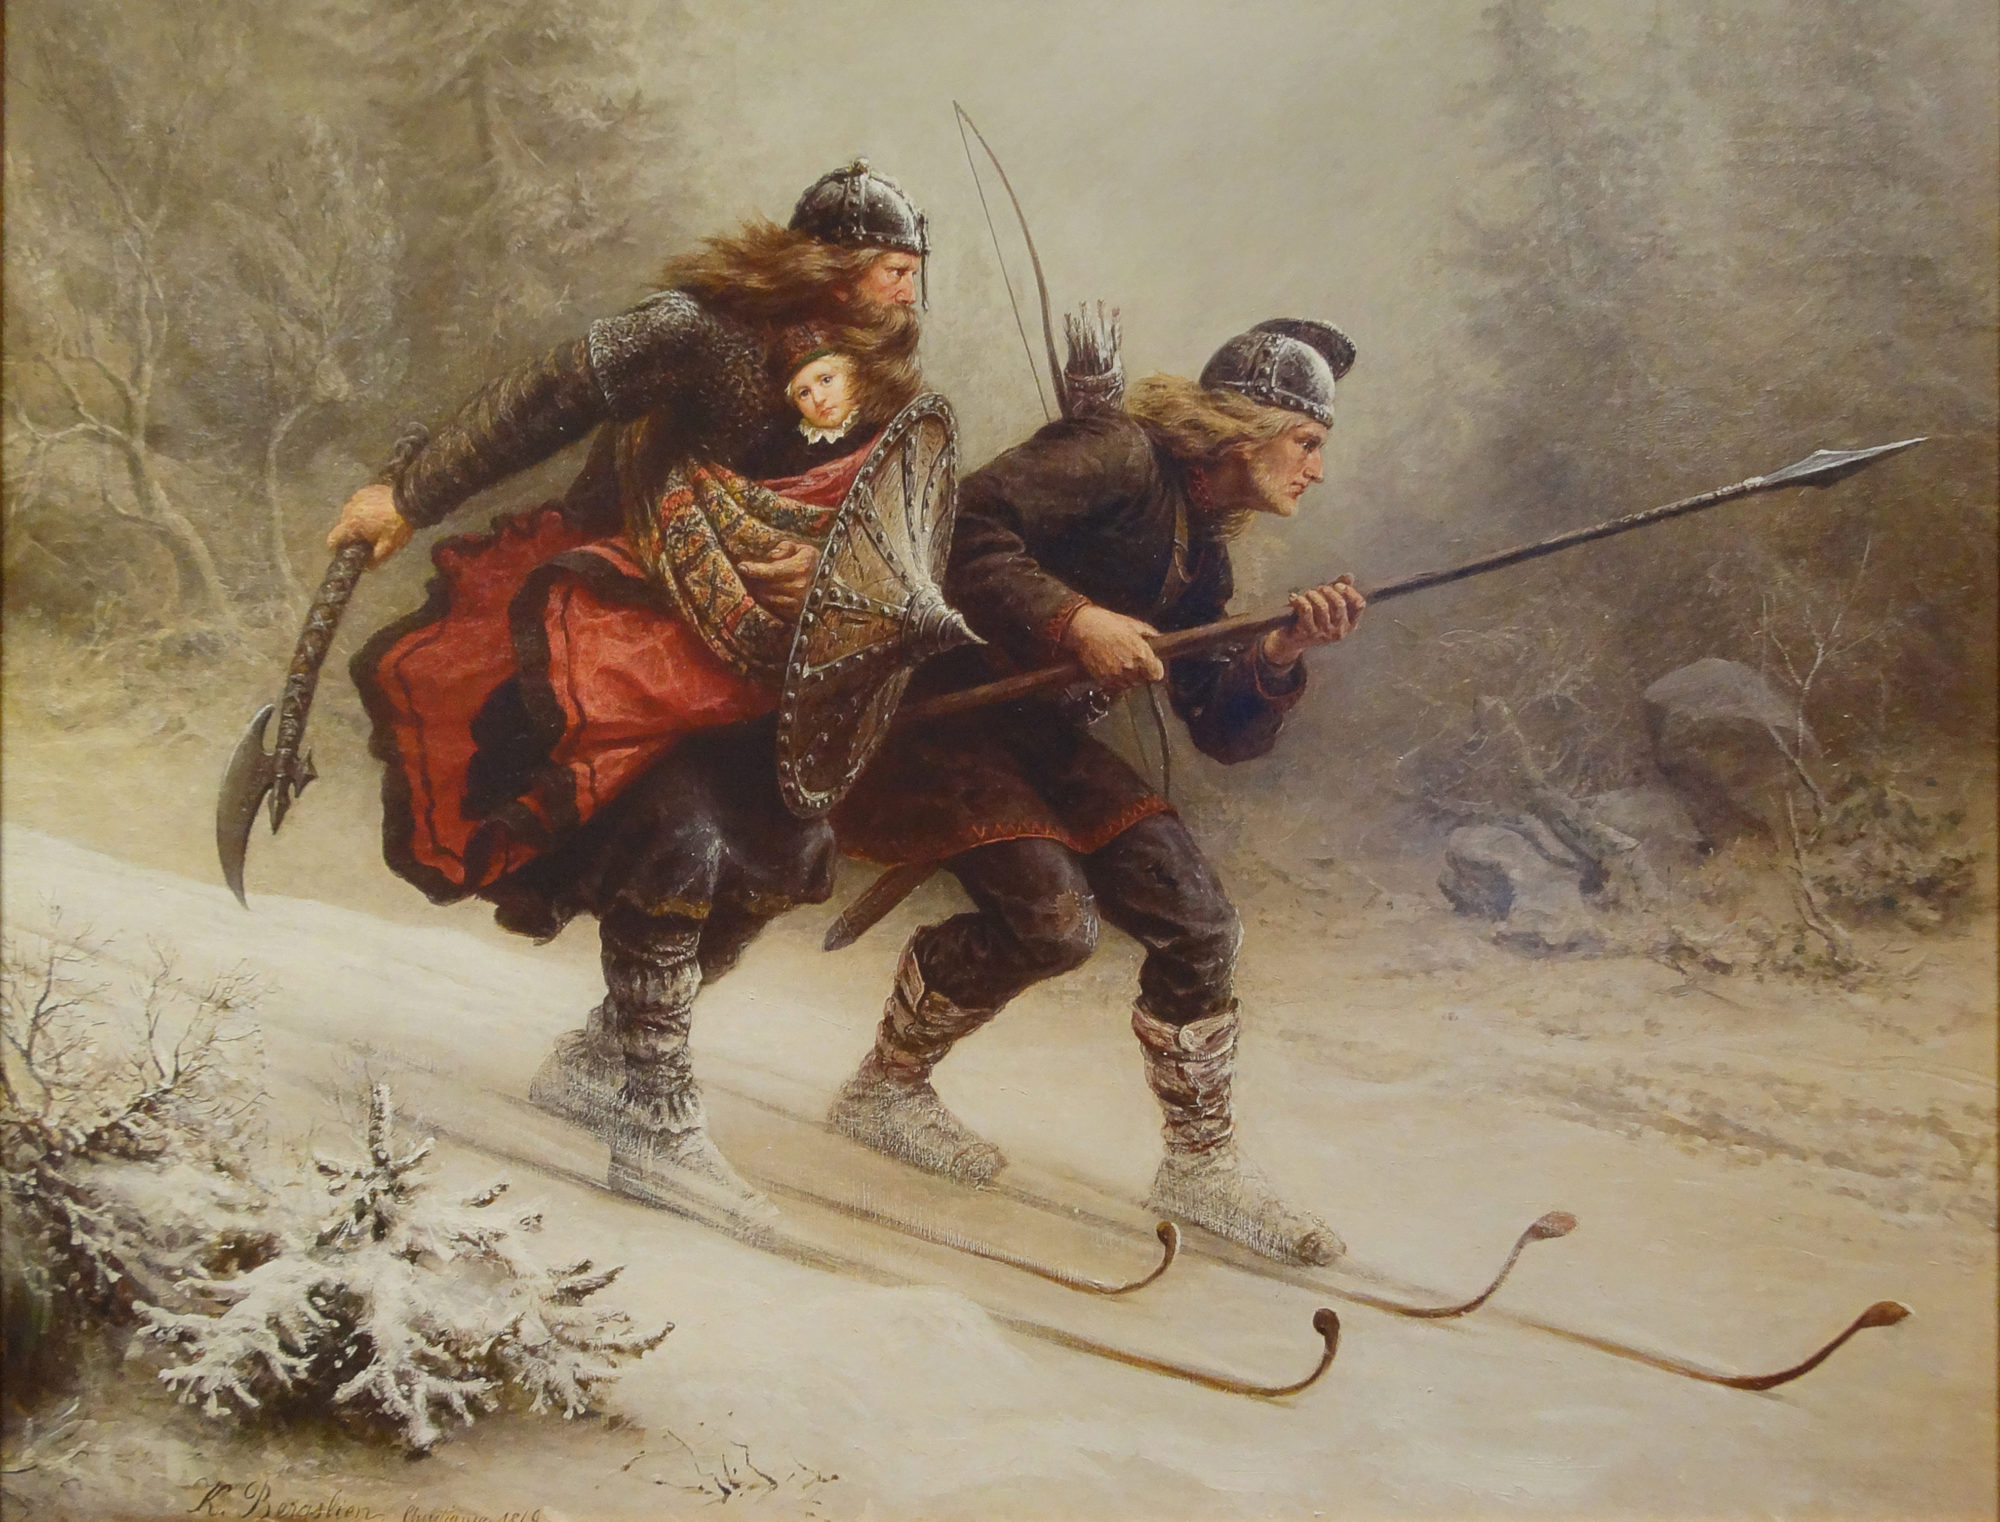 The Norwegian artist Knud Larsen Bergslien painted this picture of a dramatic event in Norwegian history from 1206, when skiers escaped from Lillehammer with two-year-old Håkon Håkonsson, whose life was threatened by a civil war. Håkonsson survived the 100-km trip across the mountains in the depths of winter and became king in 1217. The painting underscores the deep cultural roots that skiing has in Norway.